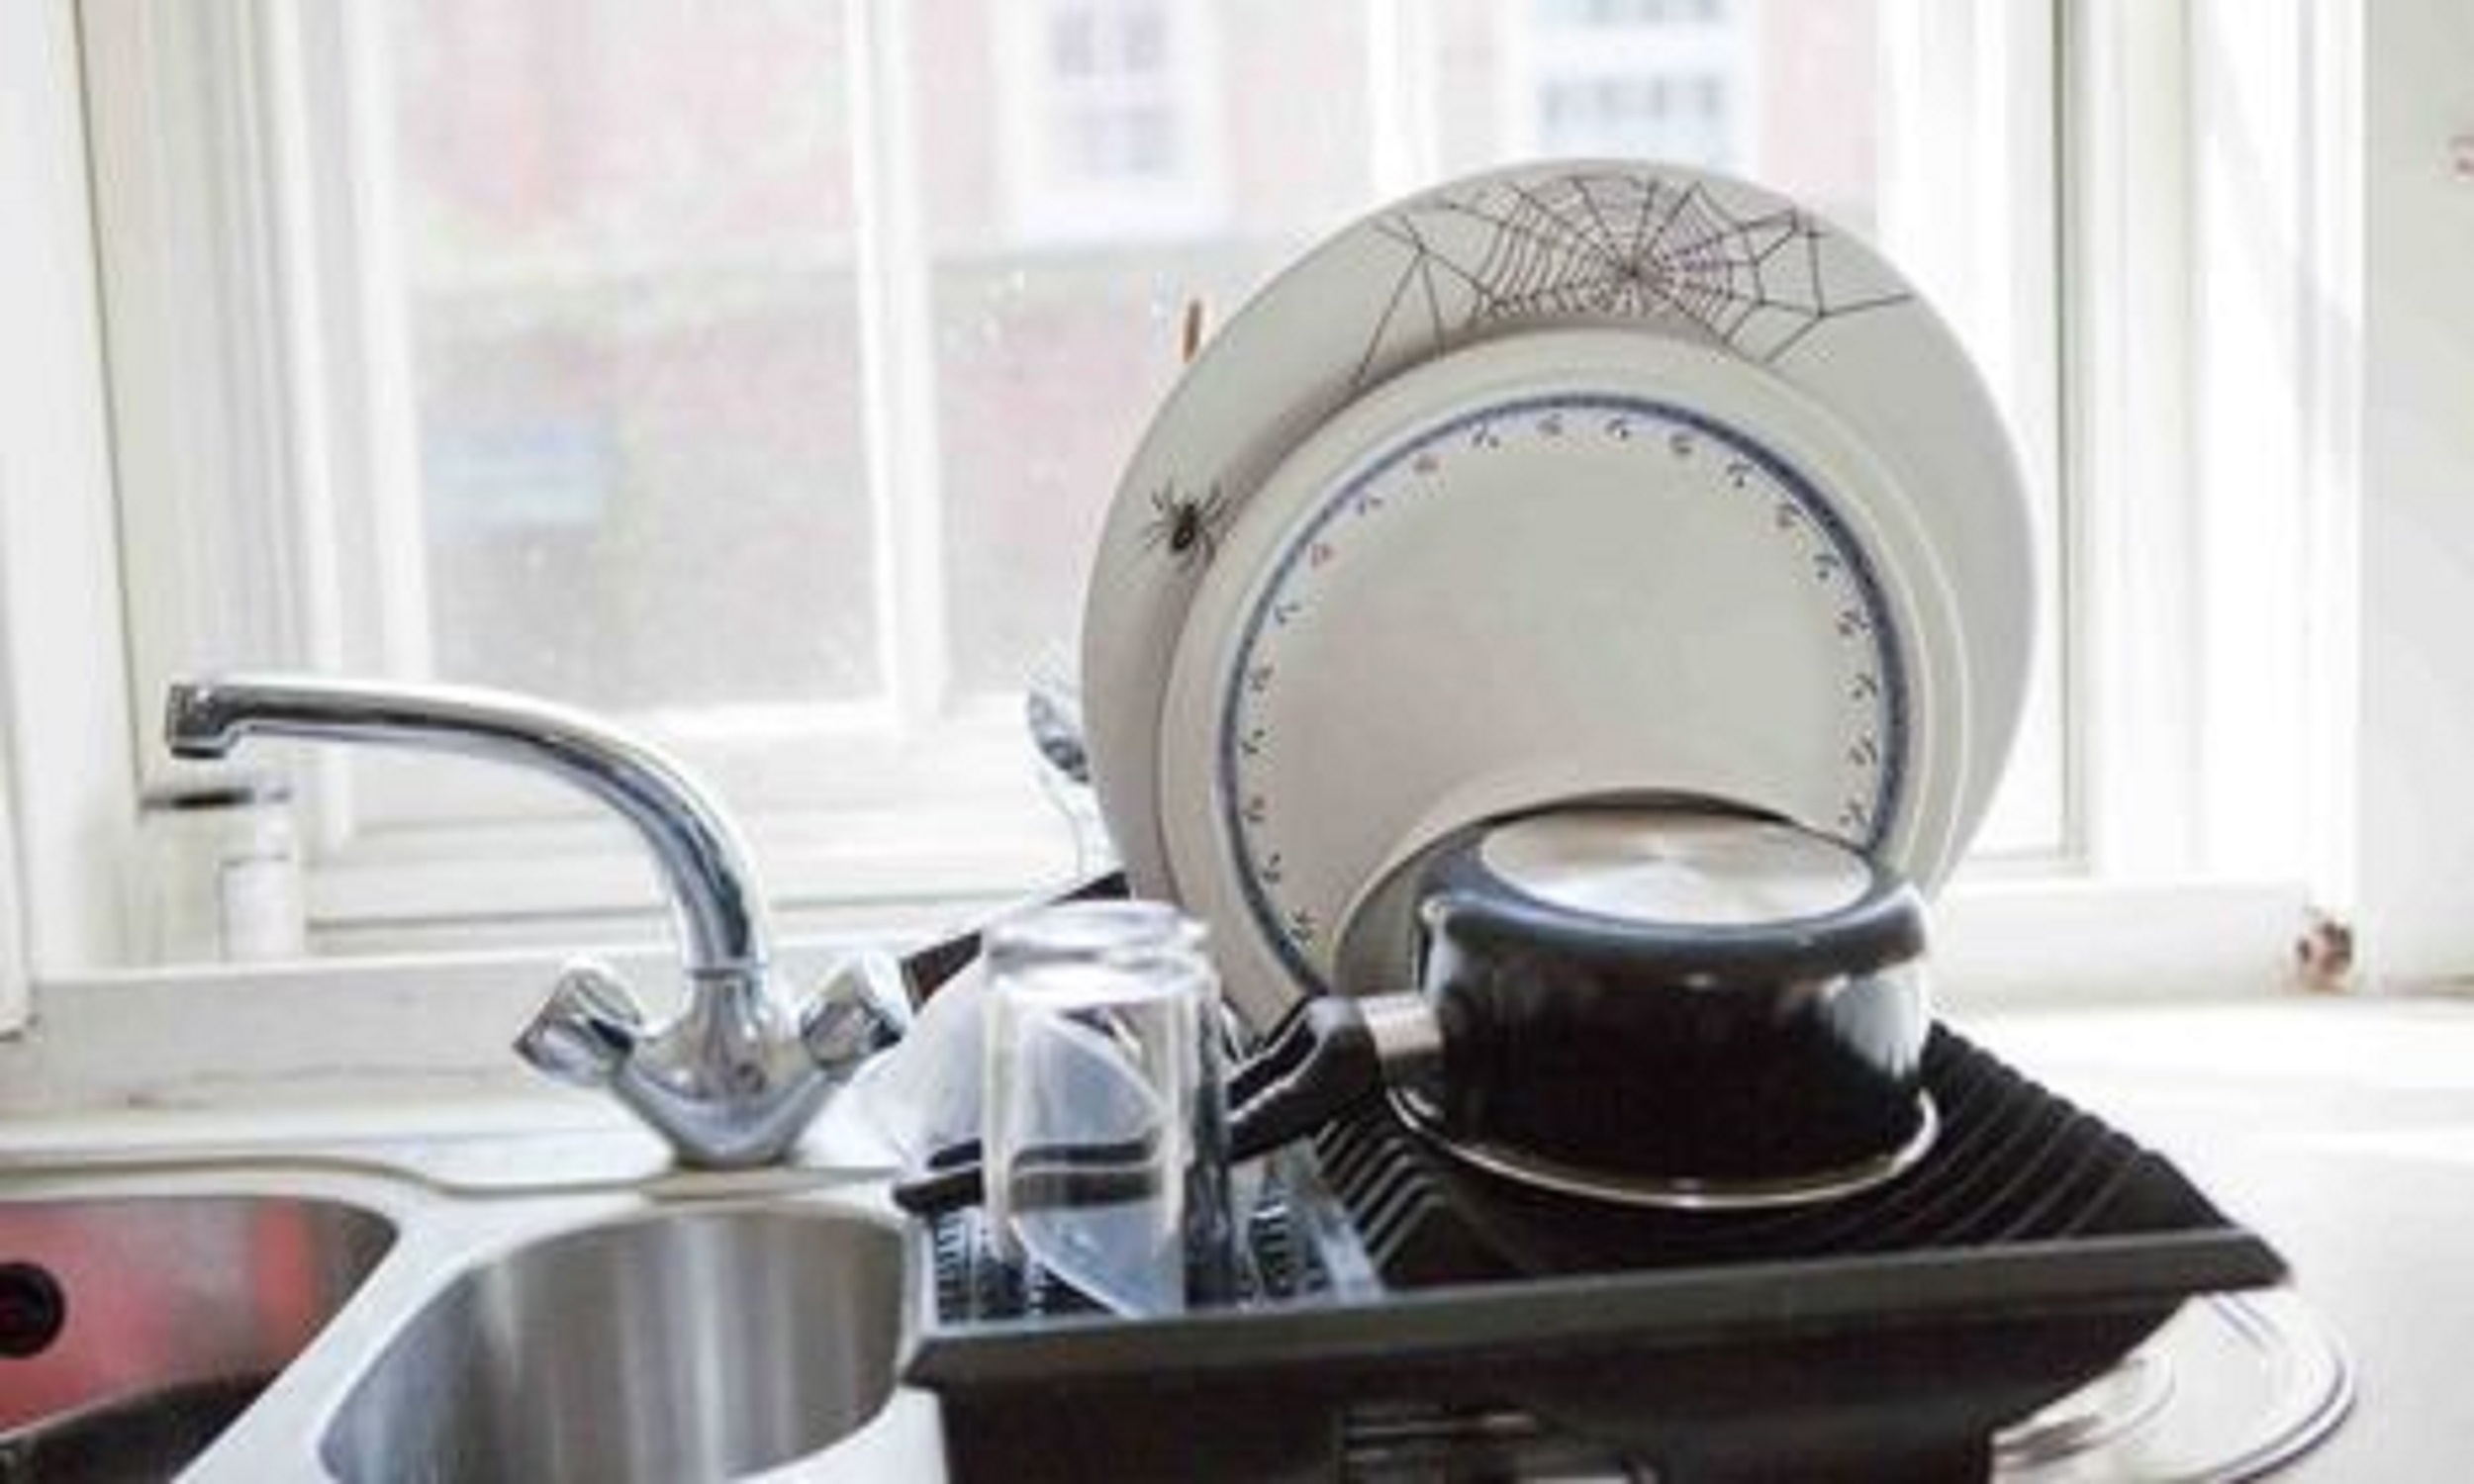 Photo of clean dishes drying beside a sink